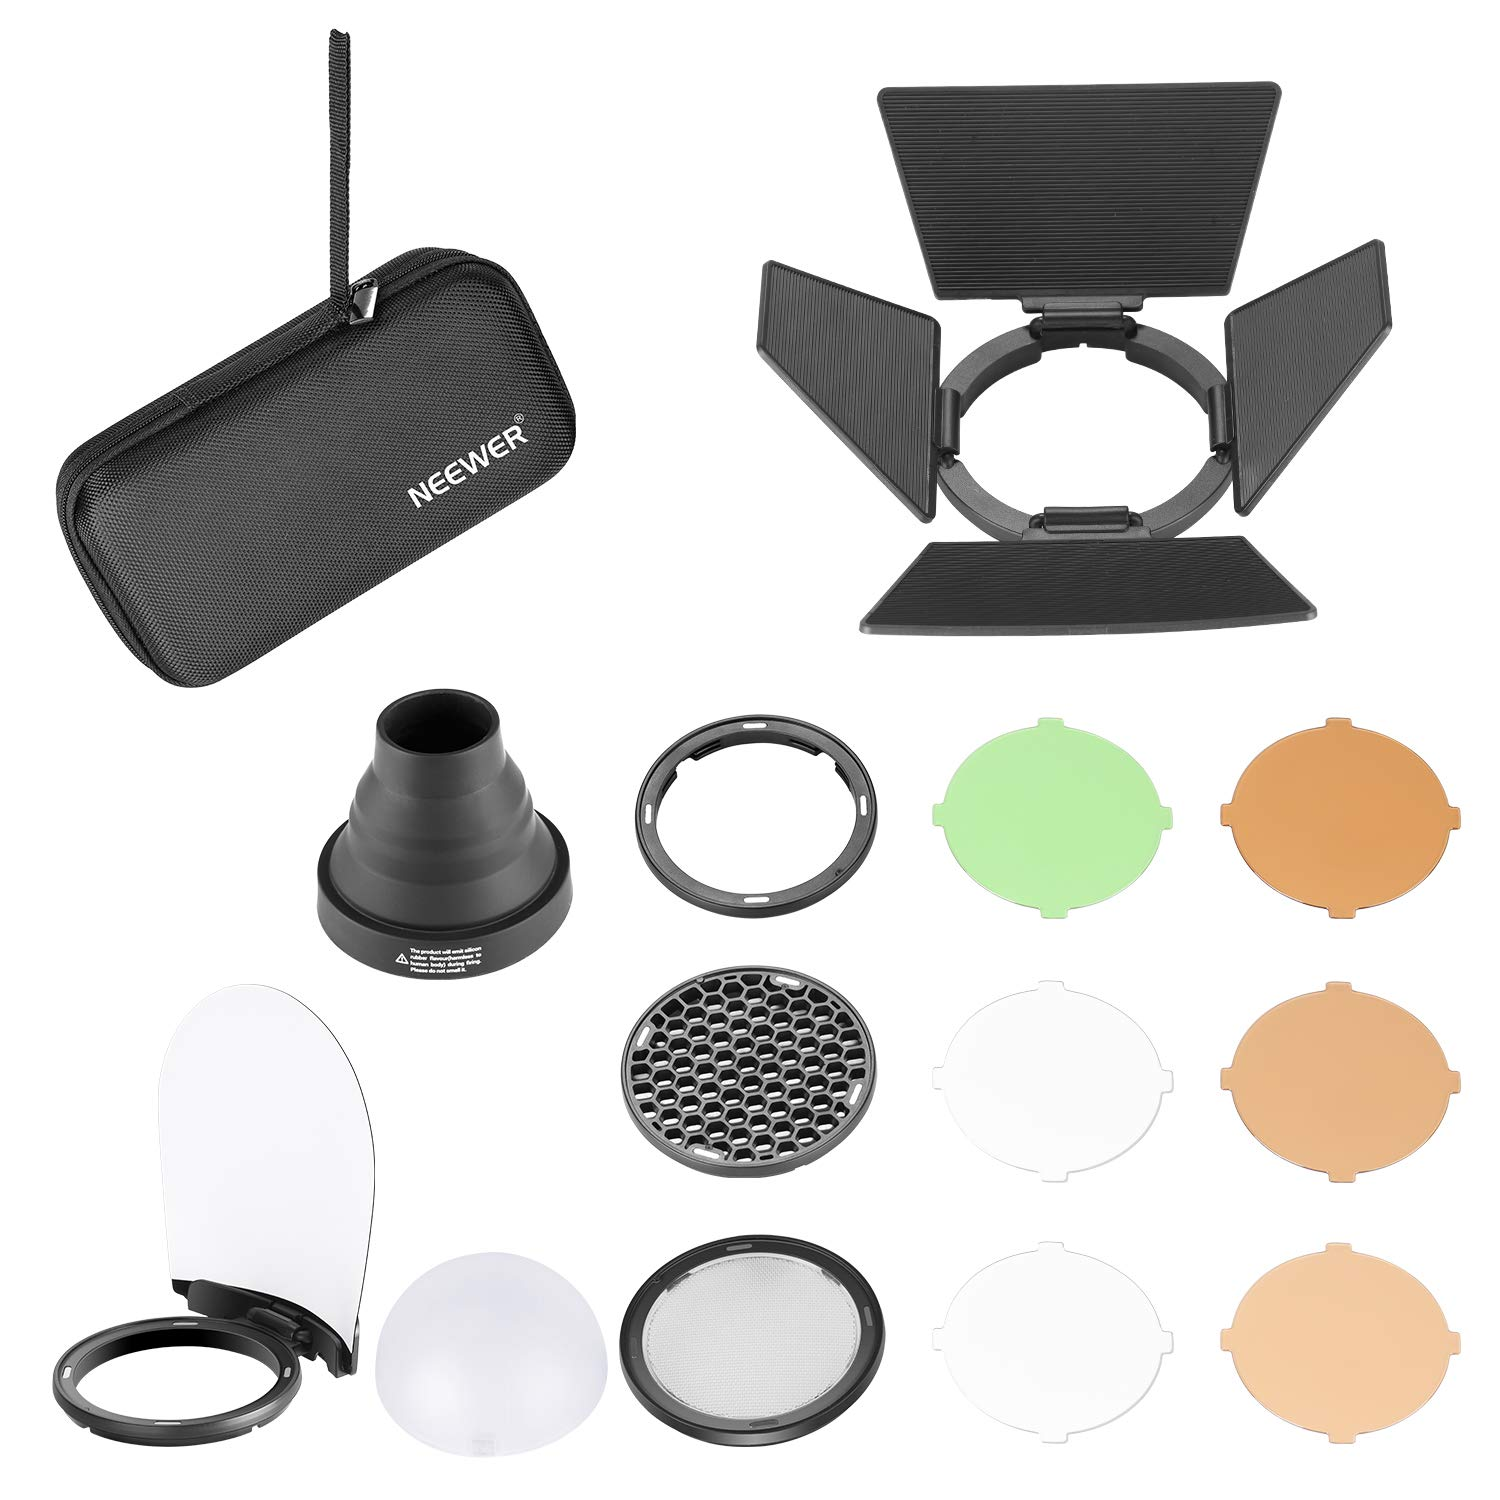 Neewer AK-R1 Round Head Flash Accessories Kit Compatible with V1-S/AD200/H200R Round Flash Light, Portable Magnetic Accessory Kit